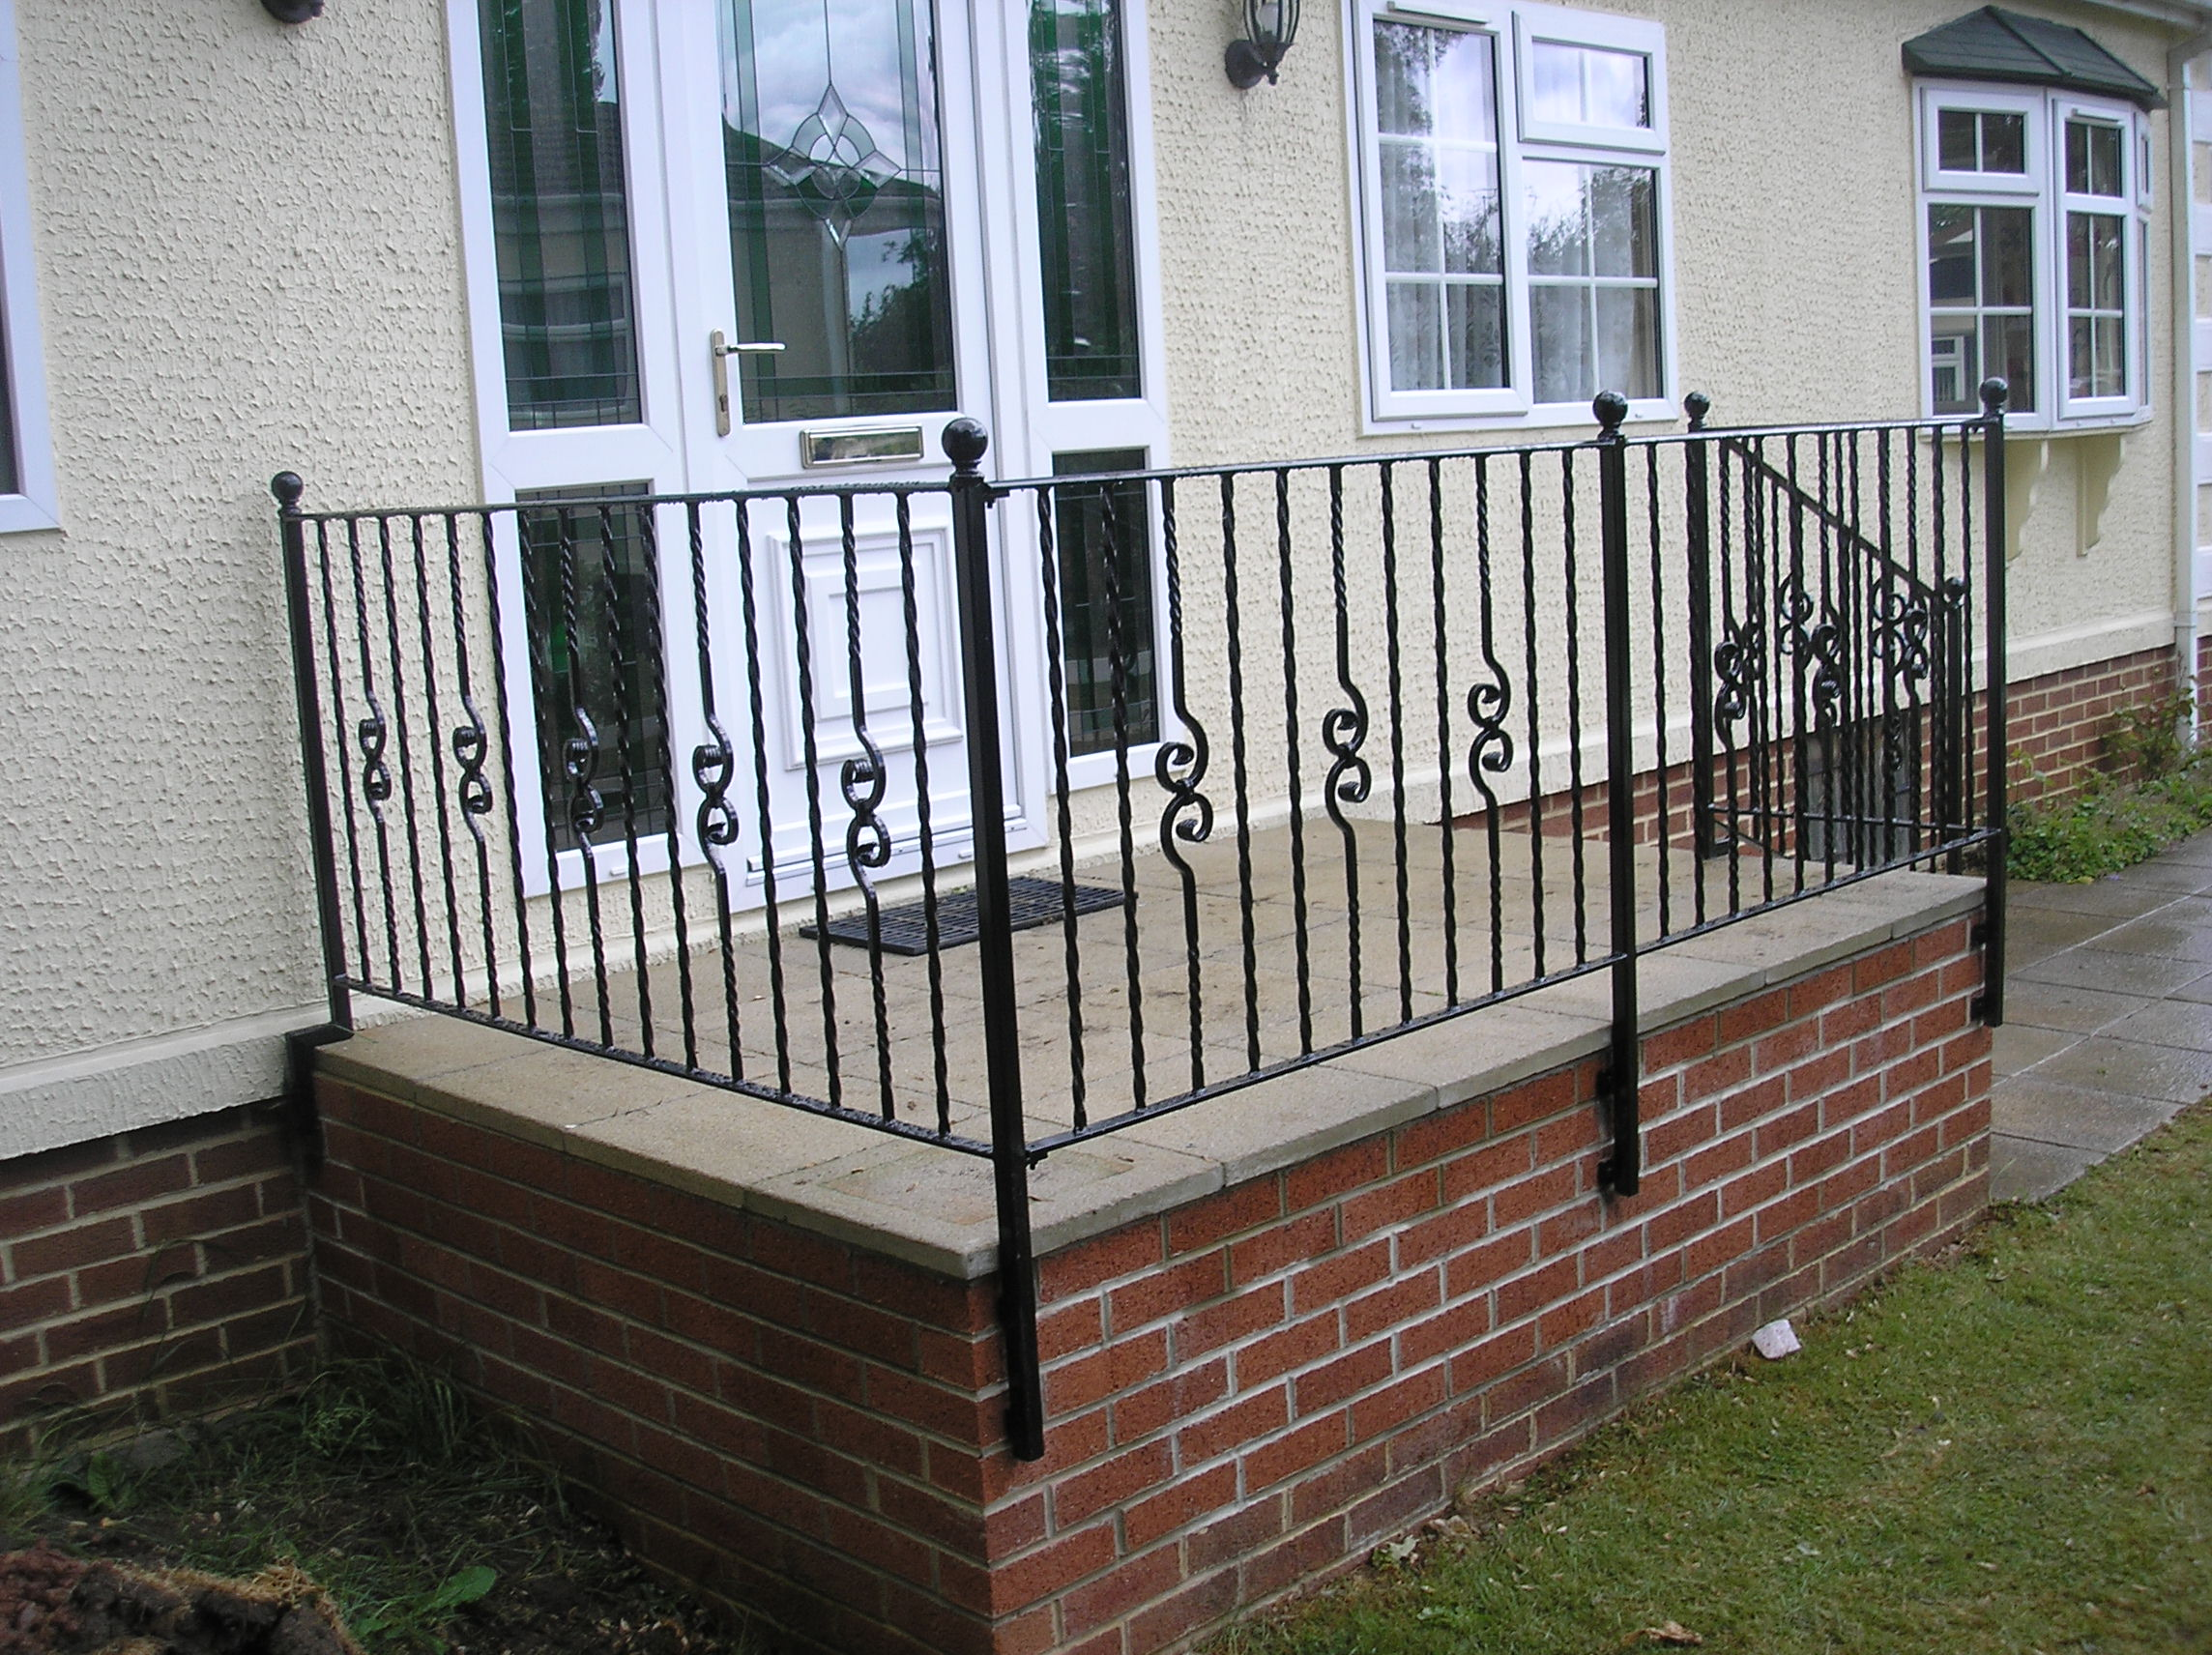 balustrade-external-wall-fixjpg